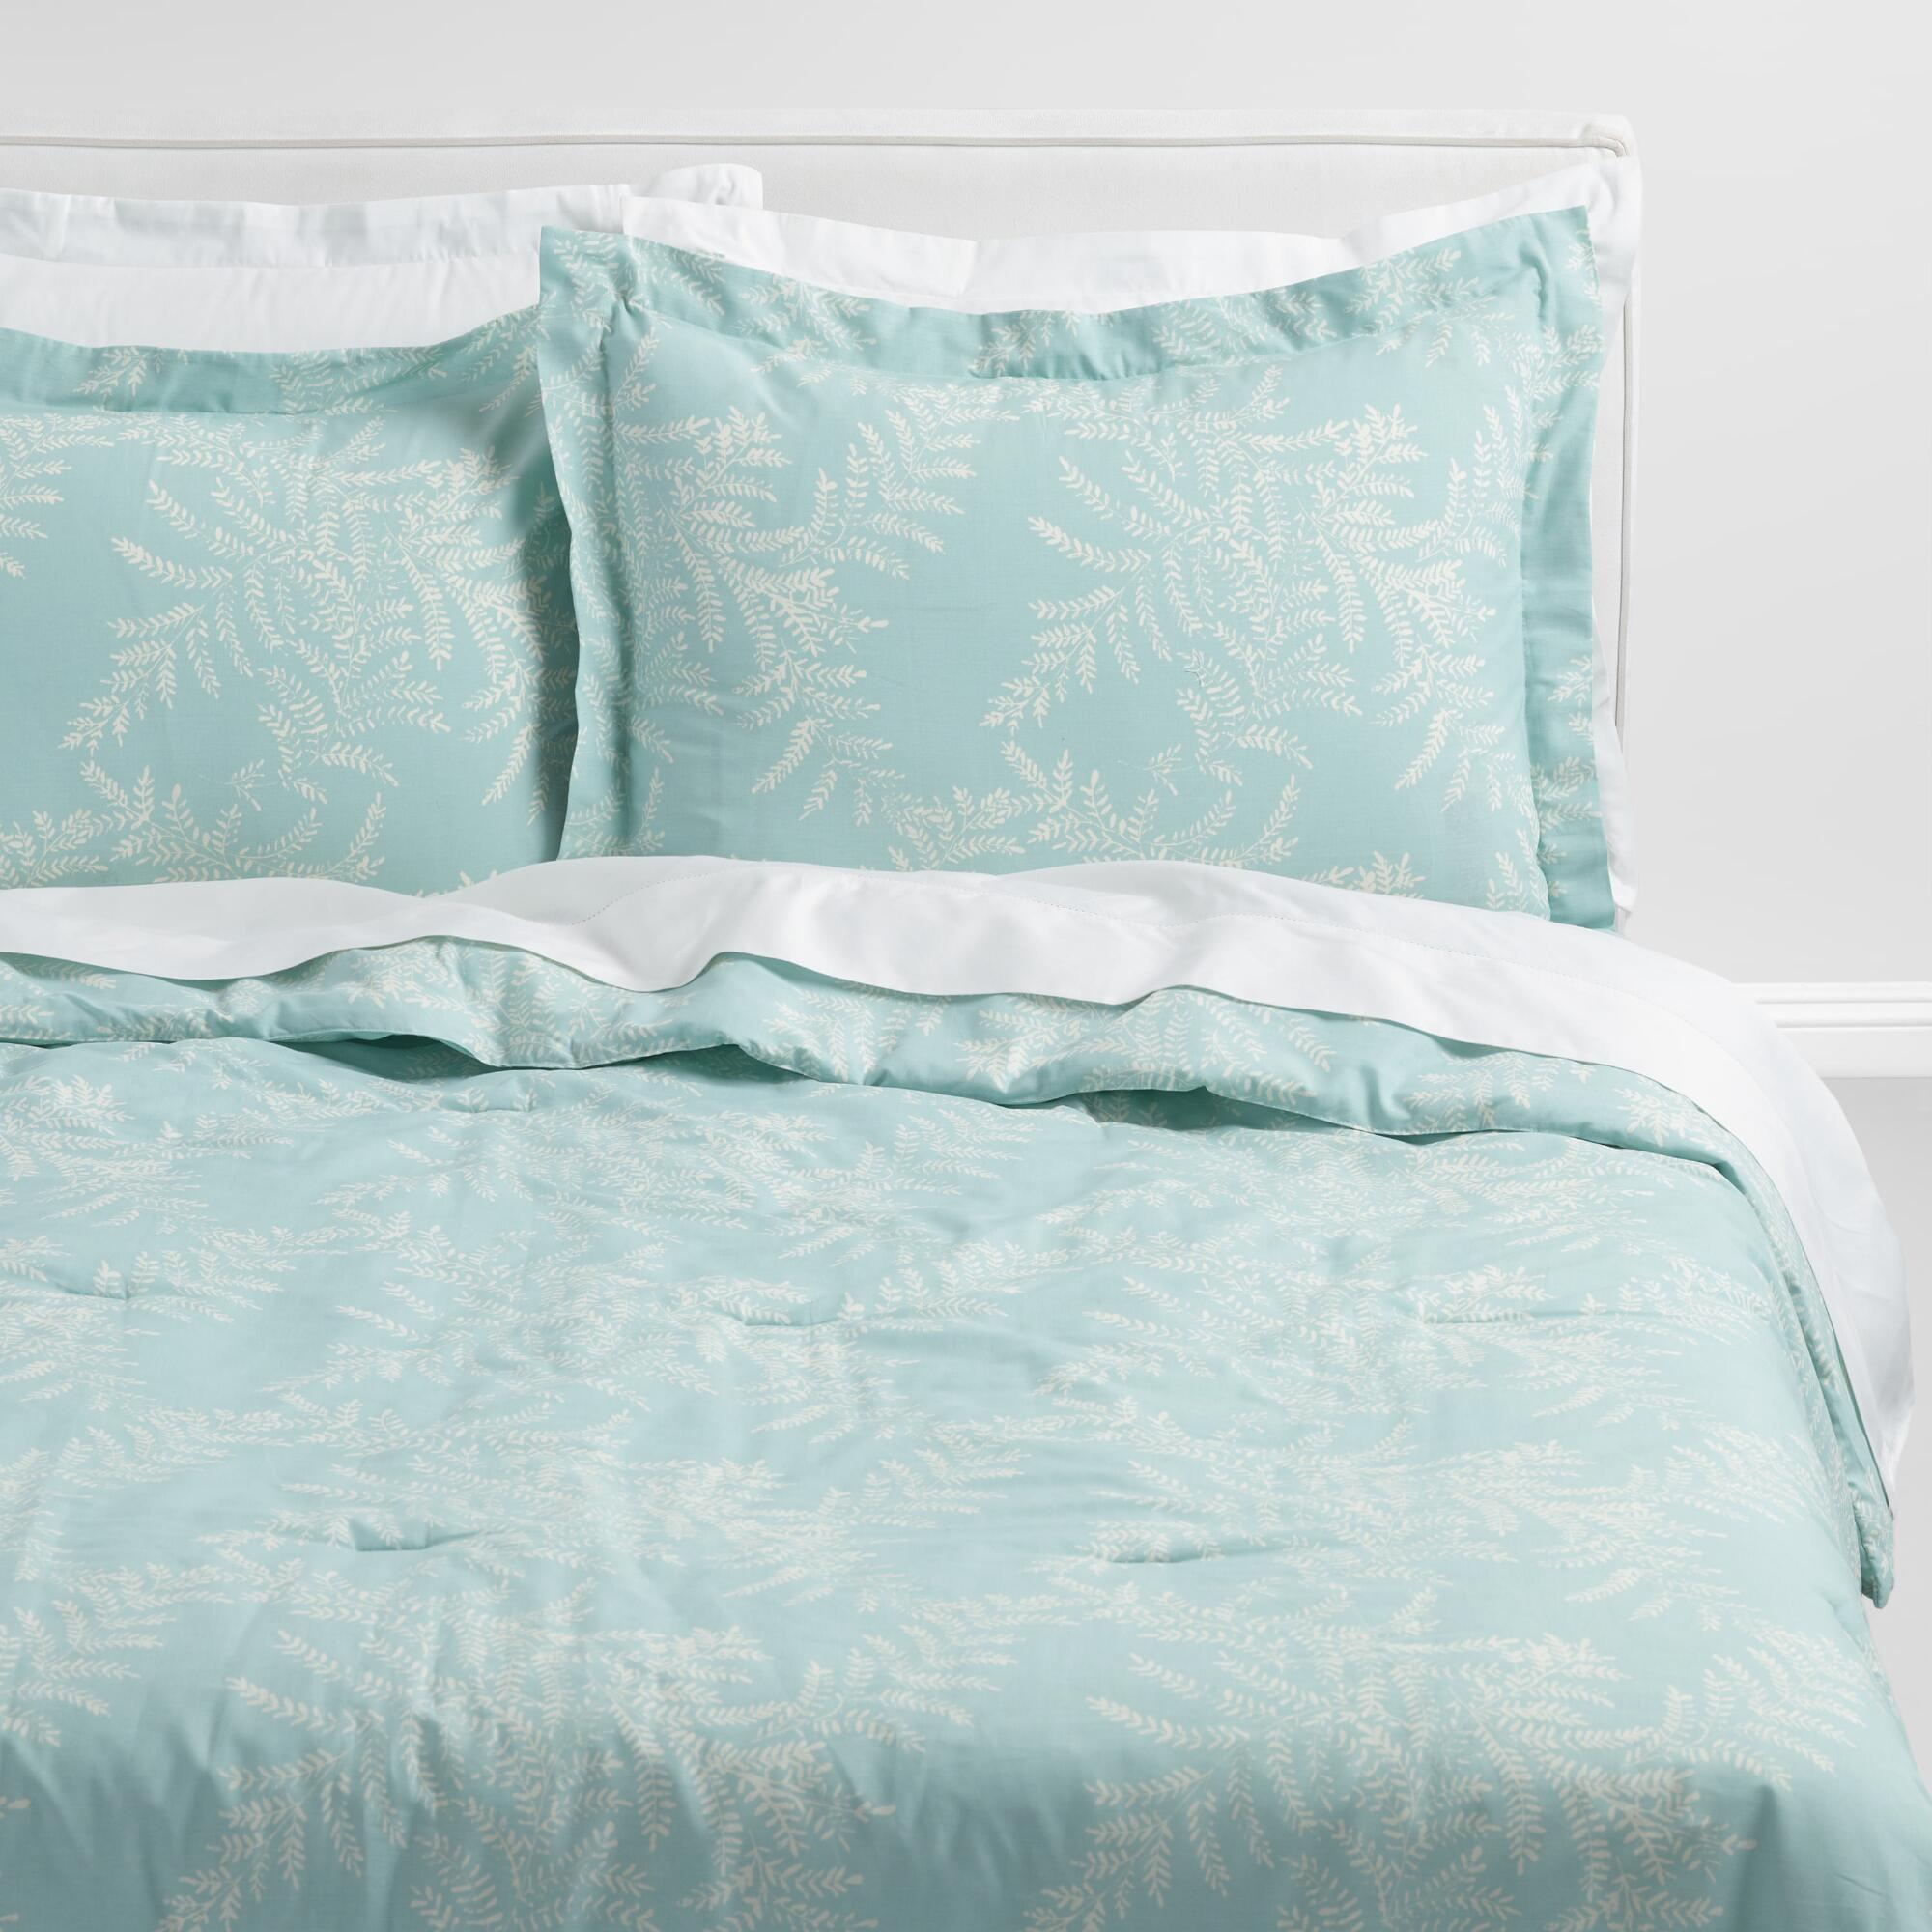 Sea Glass Aqua and Ivory Yellowstone Comforter by World Market